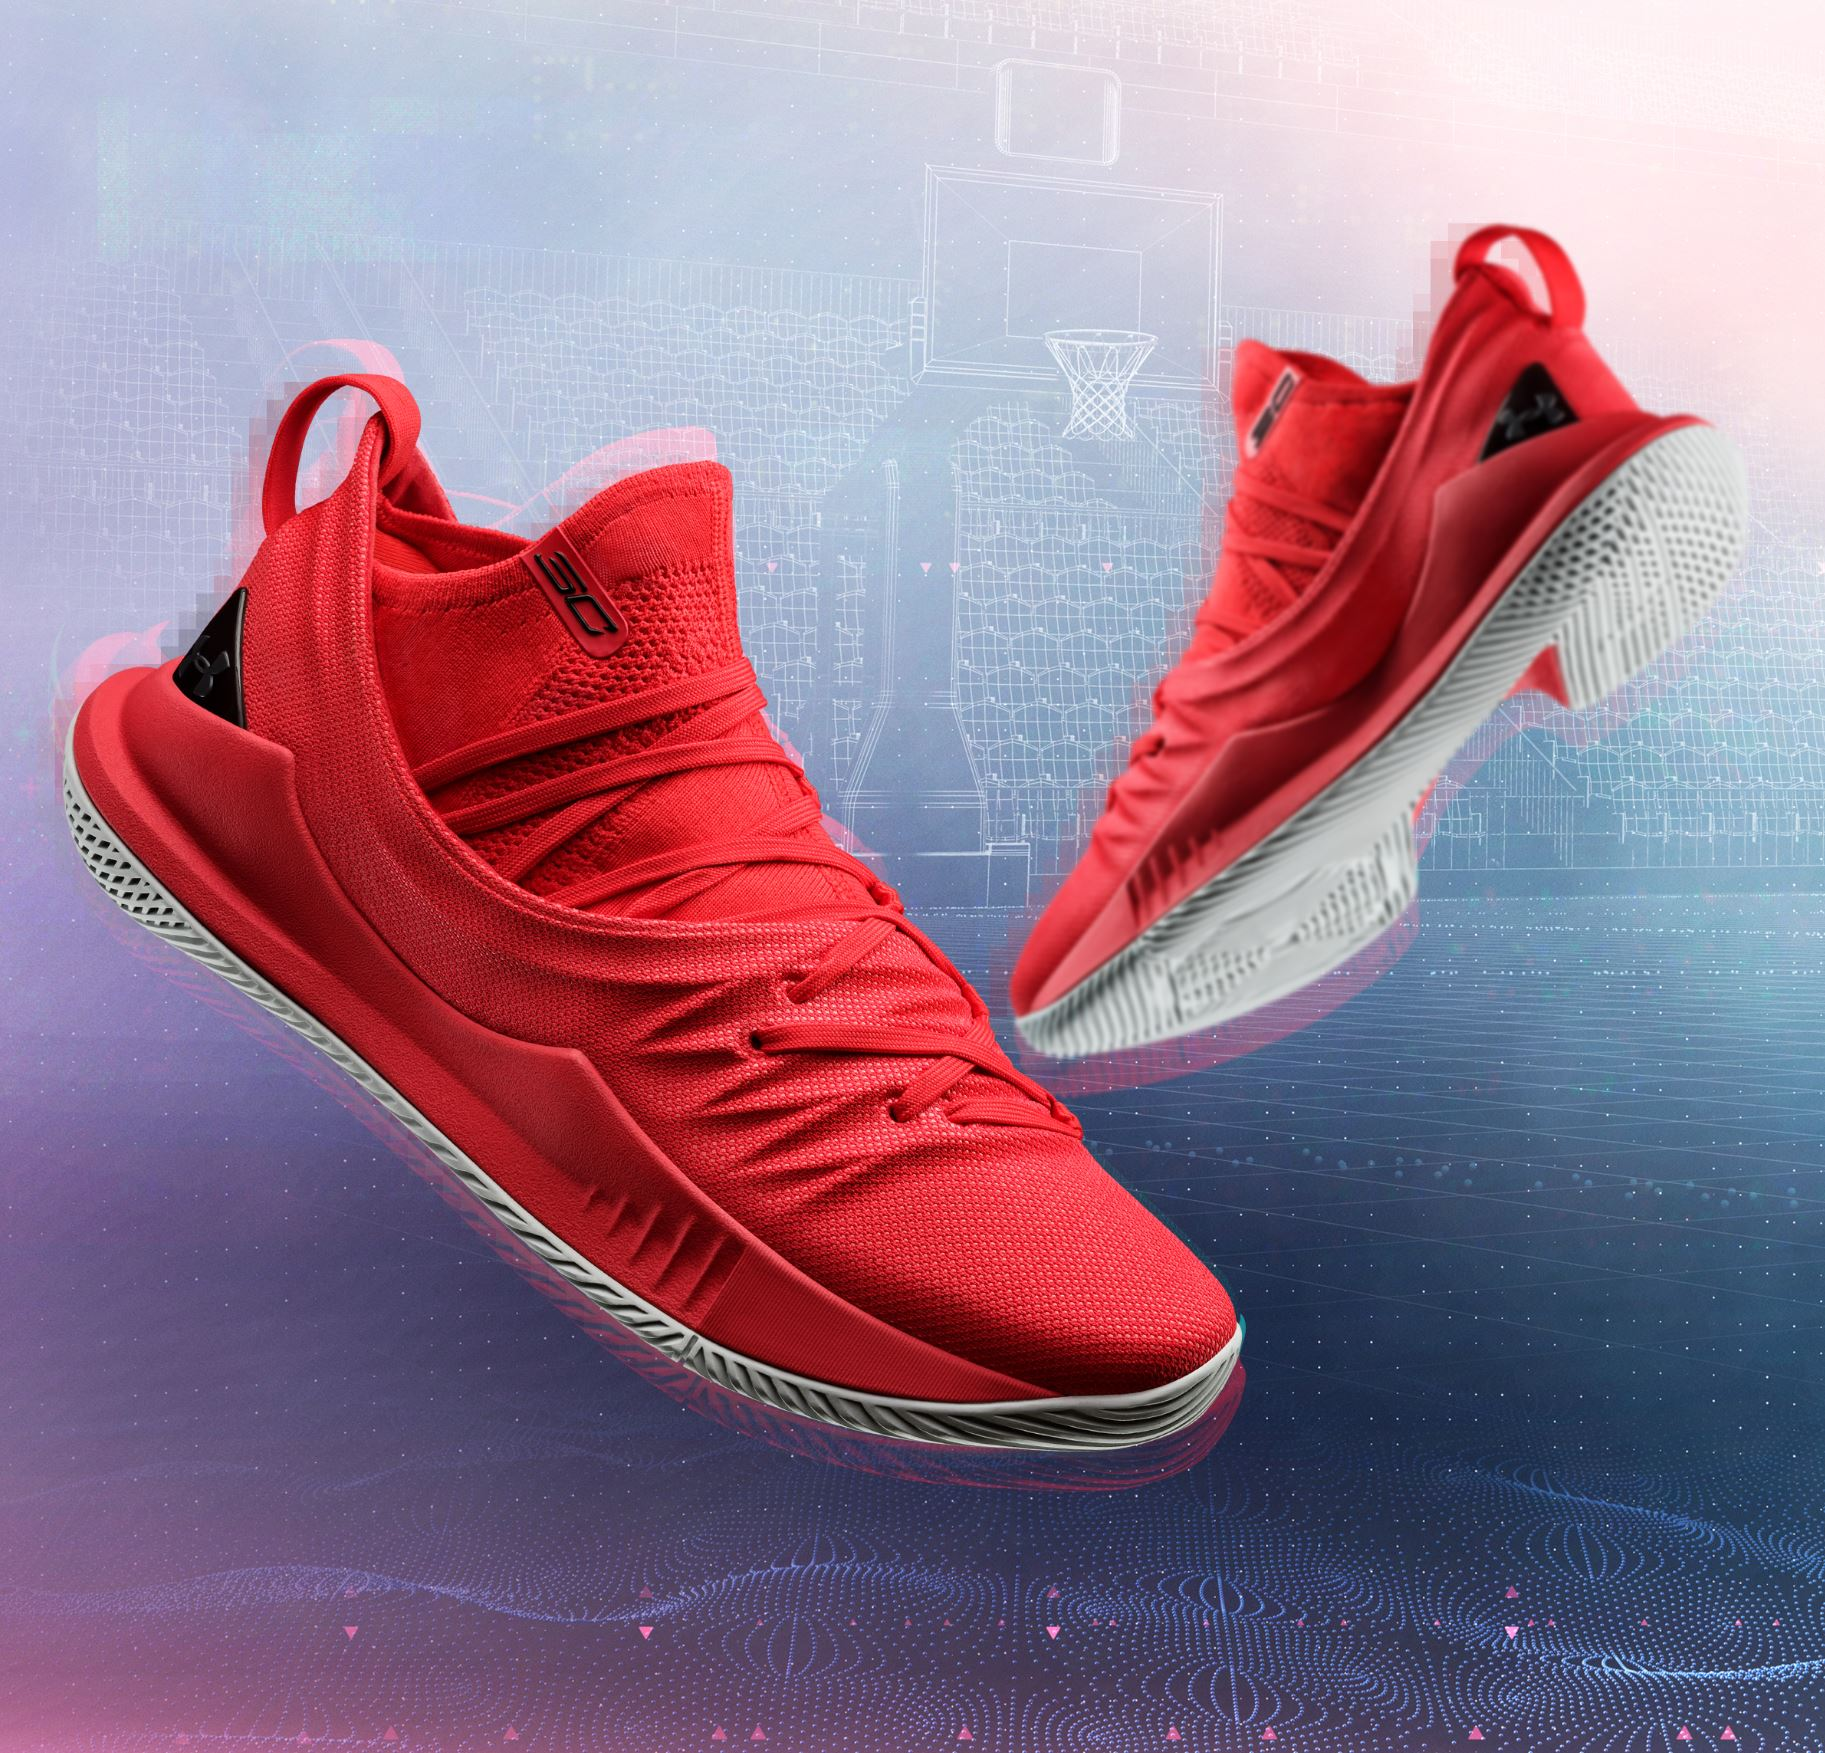 curry 5 fired up